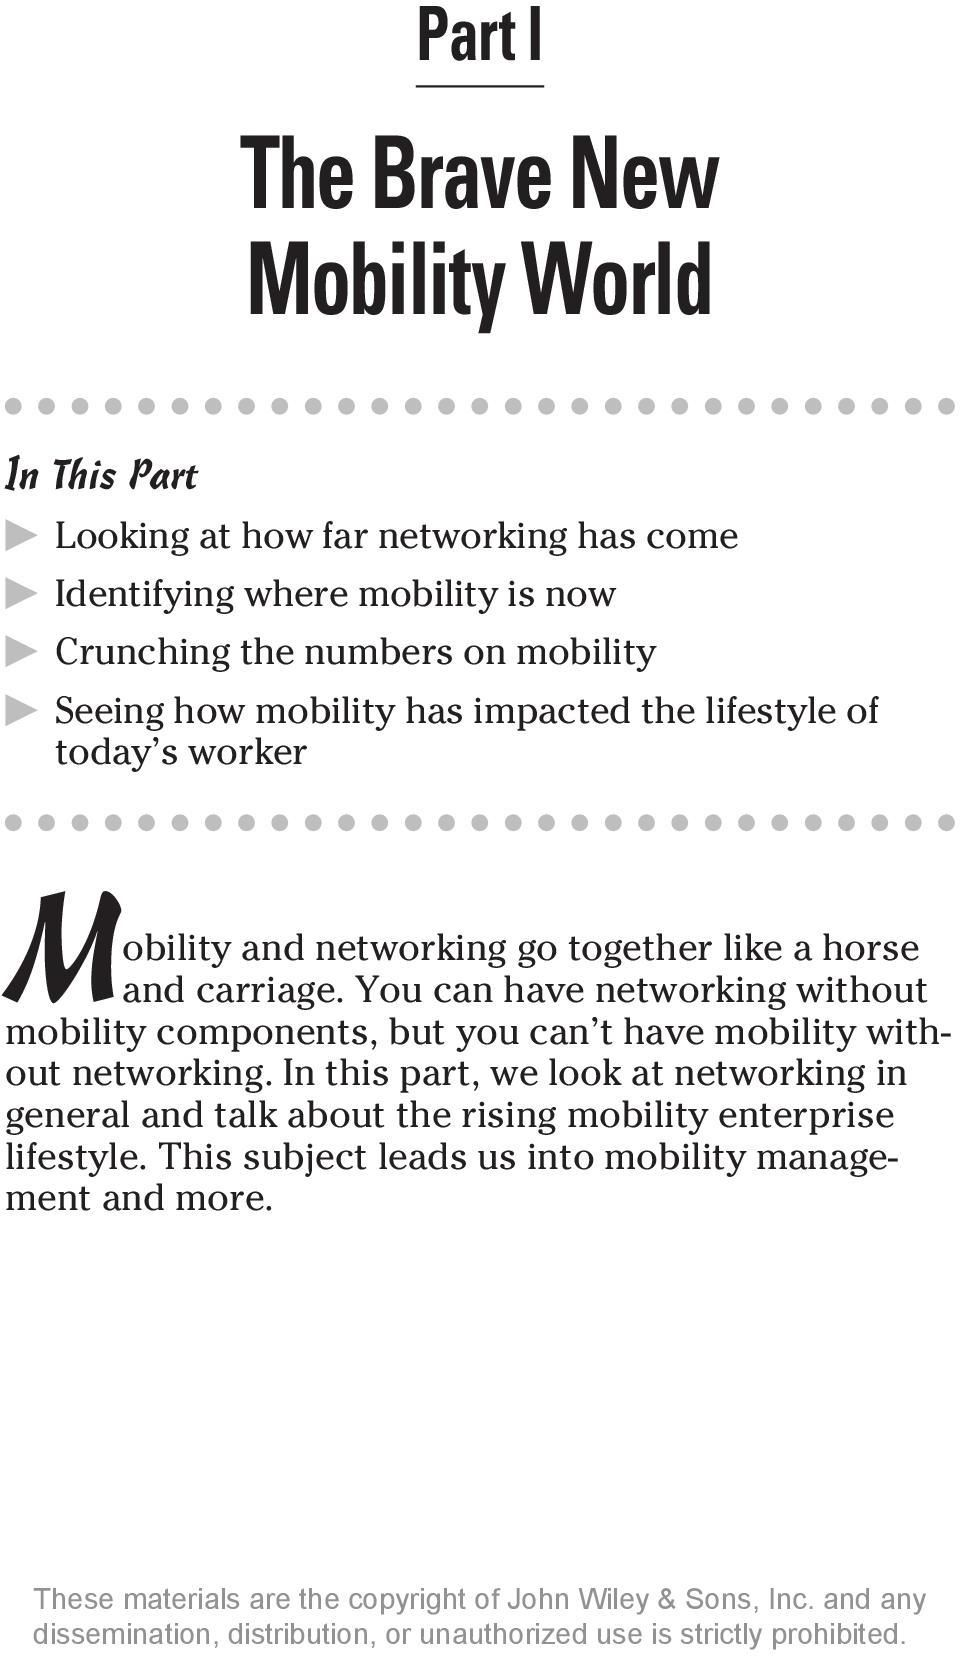 and carriage. You can have networking without mobility components, but you can t have mobility without networking.